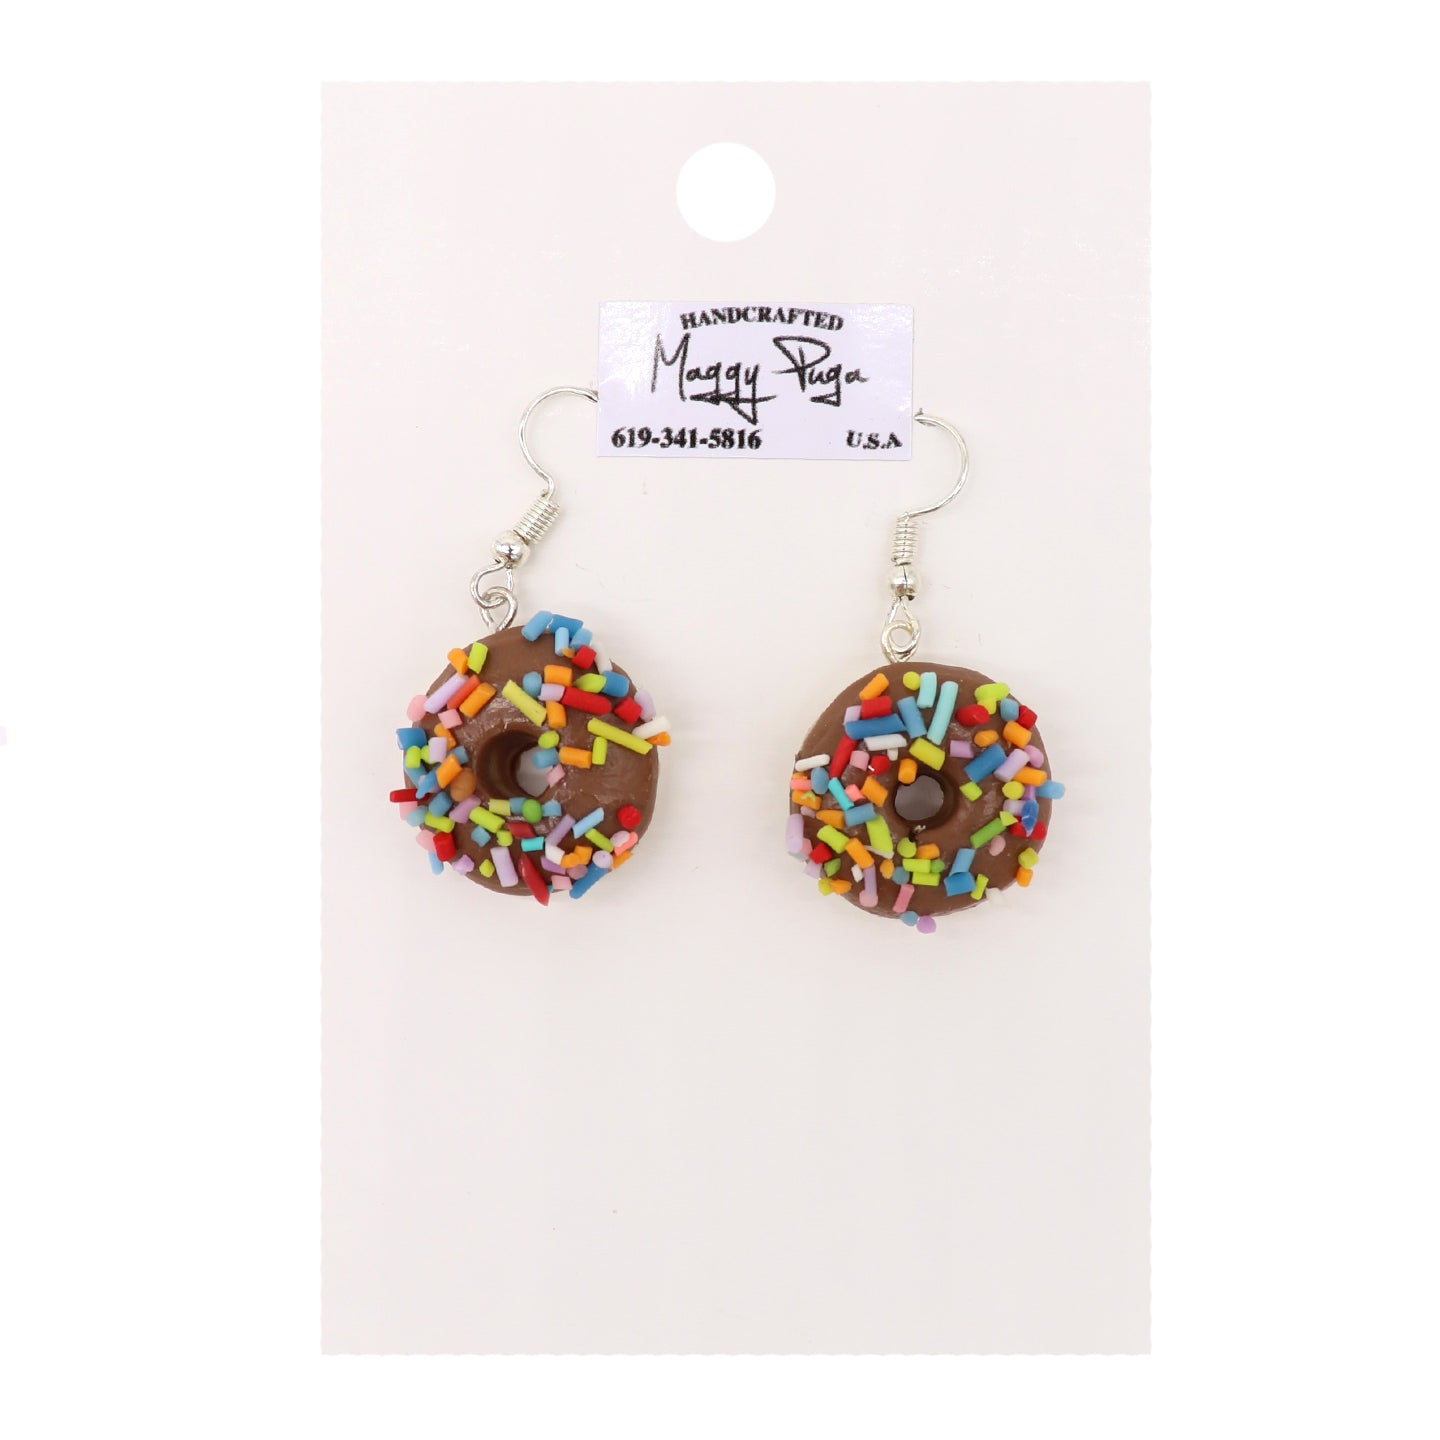 Chocolate Donut Earrings with colorful sprinkles. Handmade by small shop Maggy Puga. Sold by SDTrading Co.